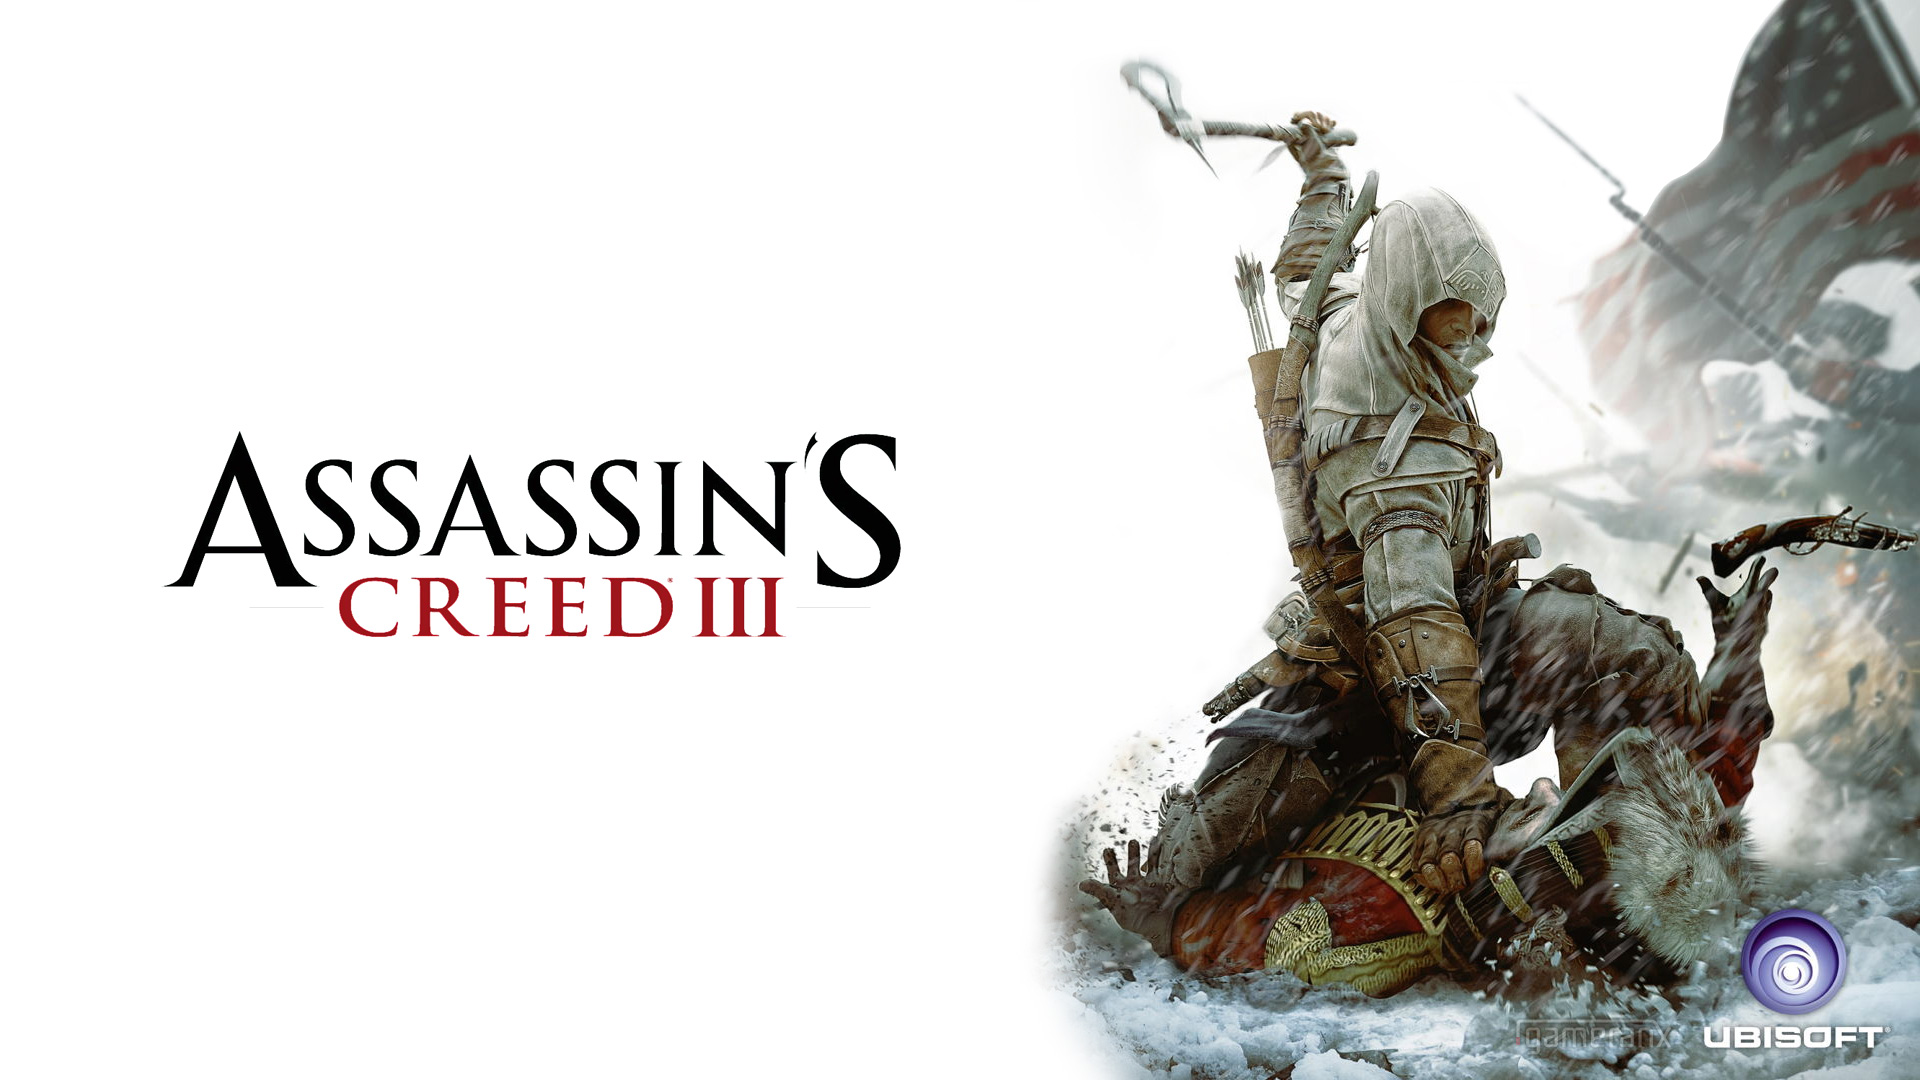 wallpapers creed assassins gallery images 1920x1080 1920x1080